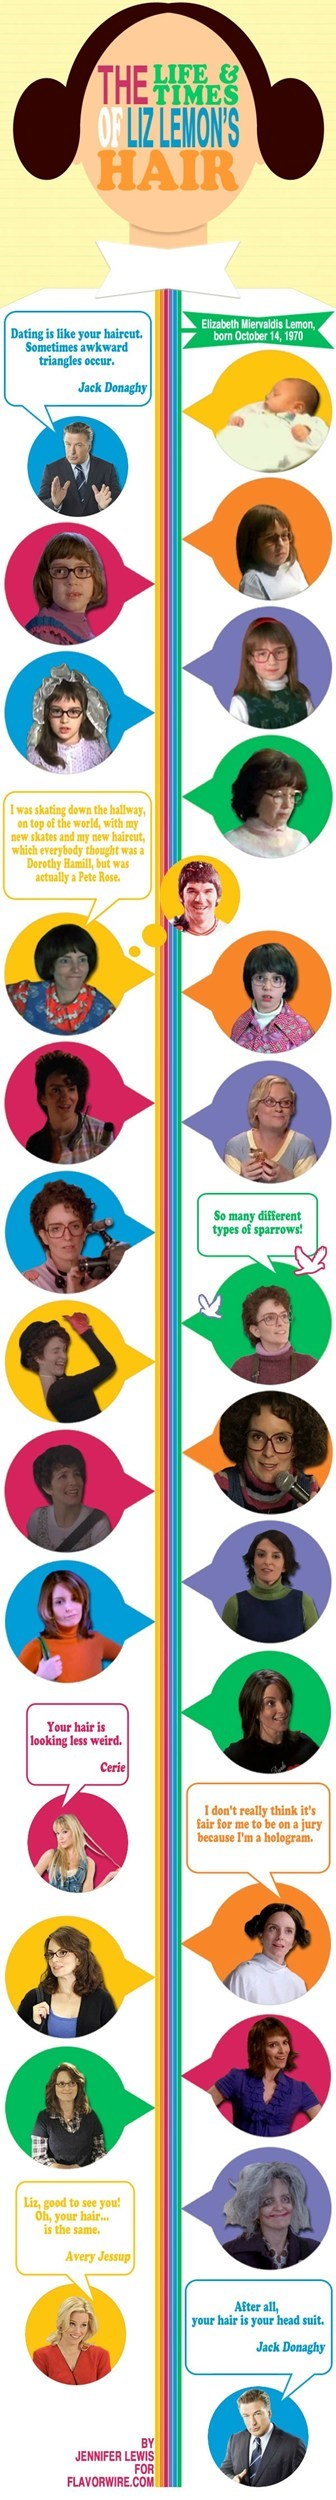 30 rock,infographic,liz lemon